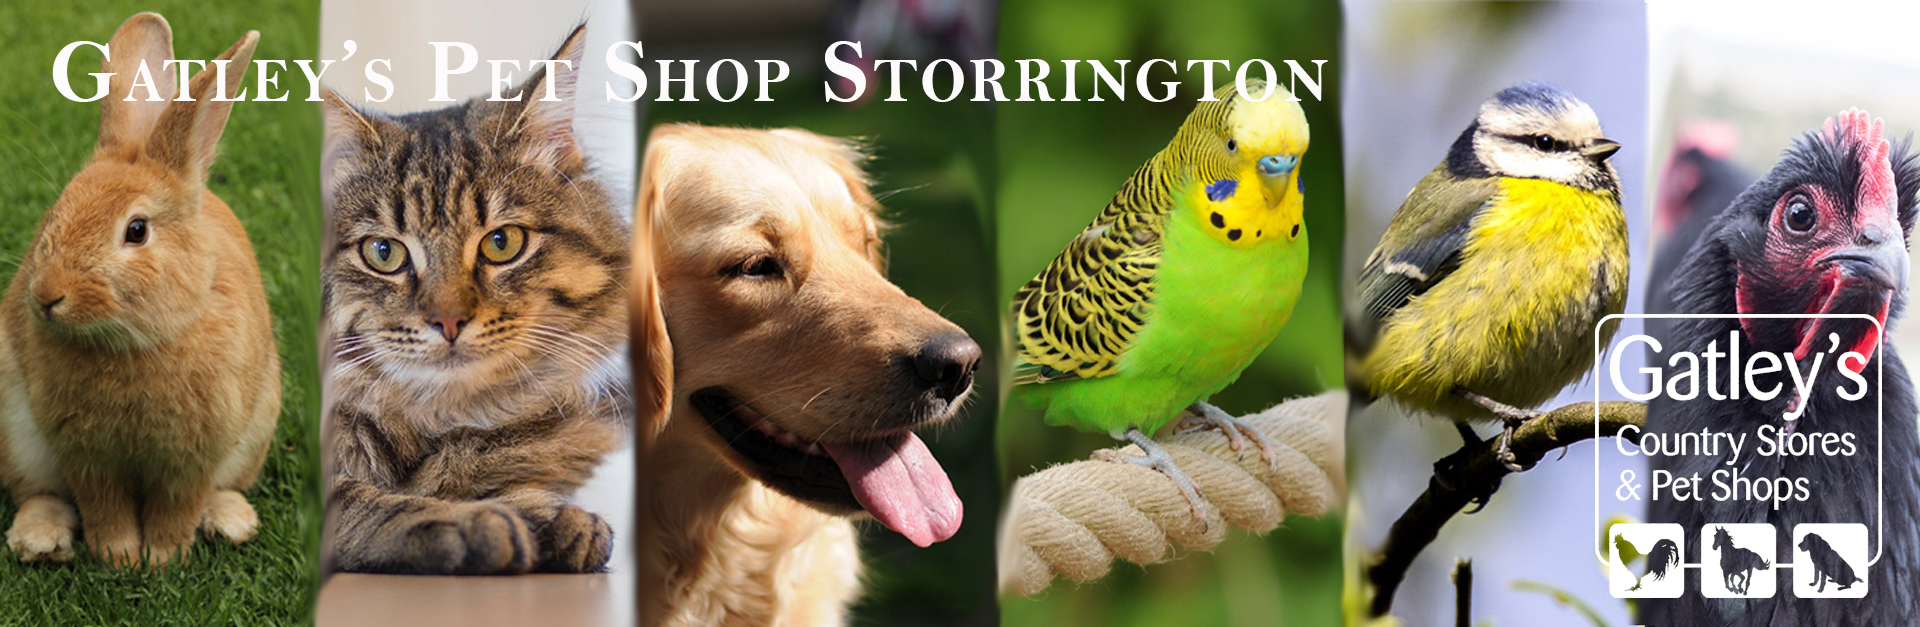 Gatleys pet shop storrington